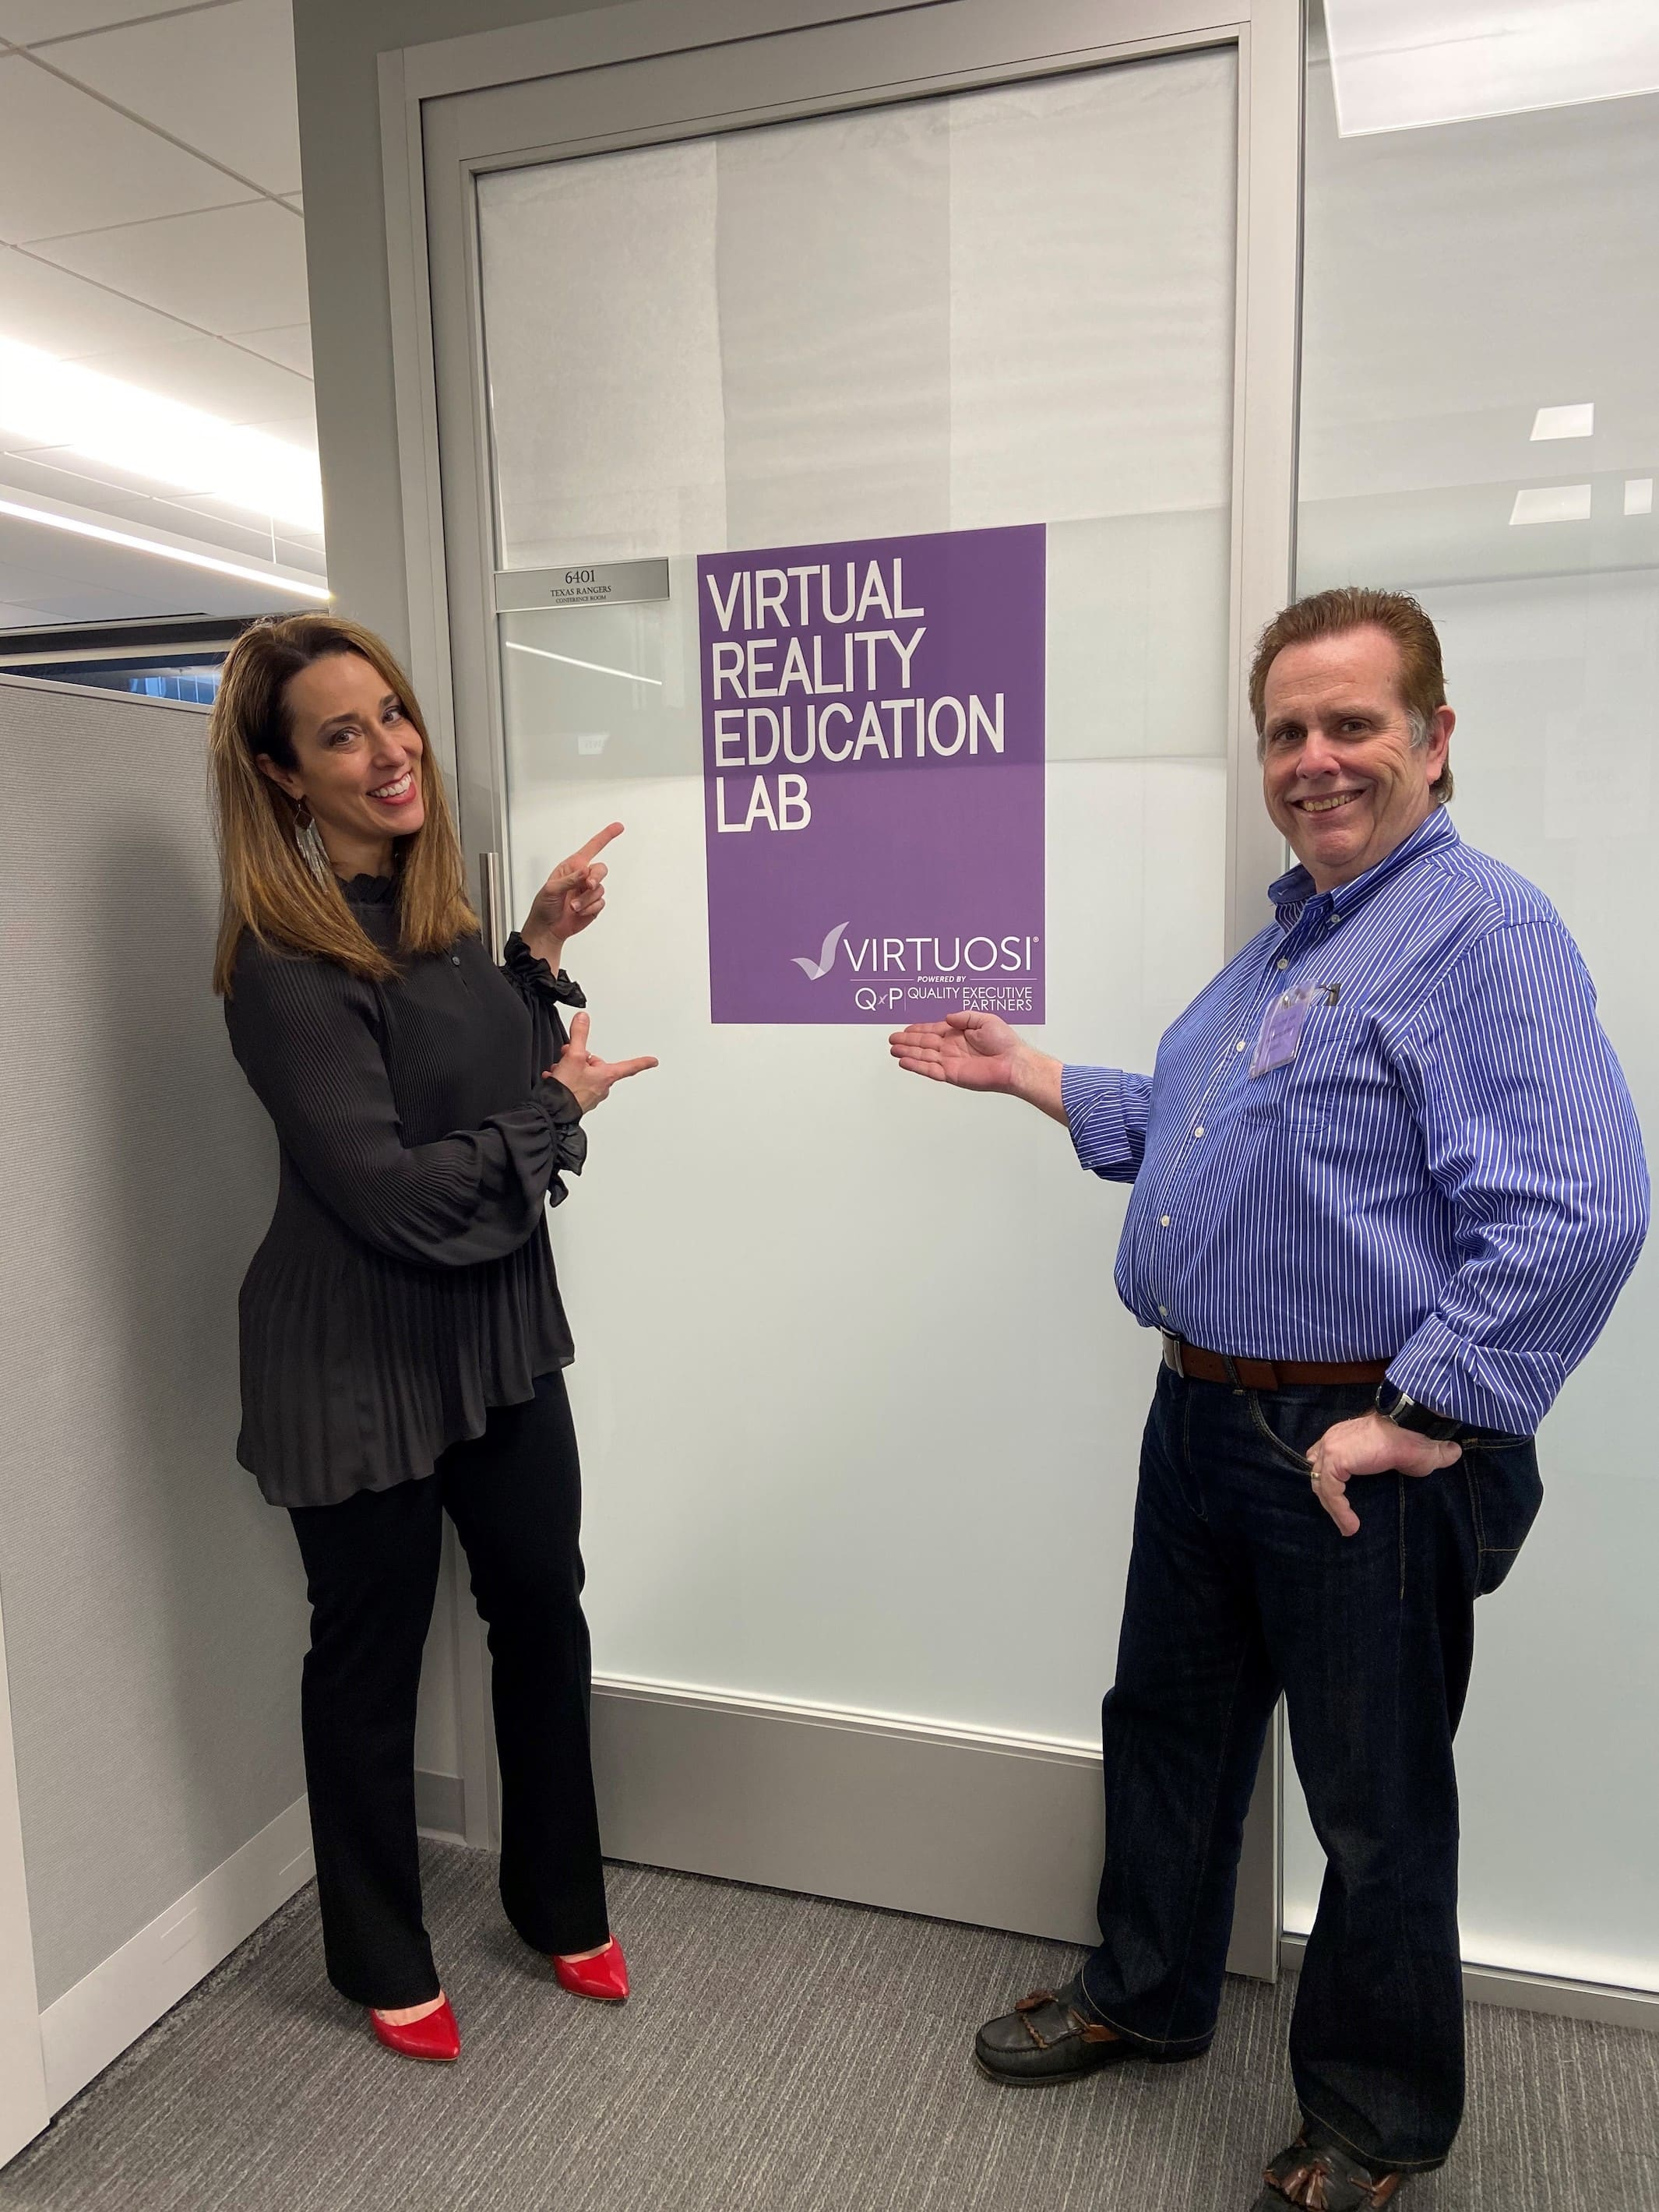 Two Virtuosi staff stand in front of the entrance to the Virtual Reality Education Lab.